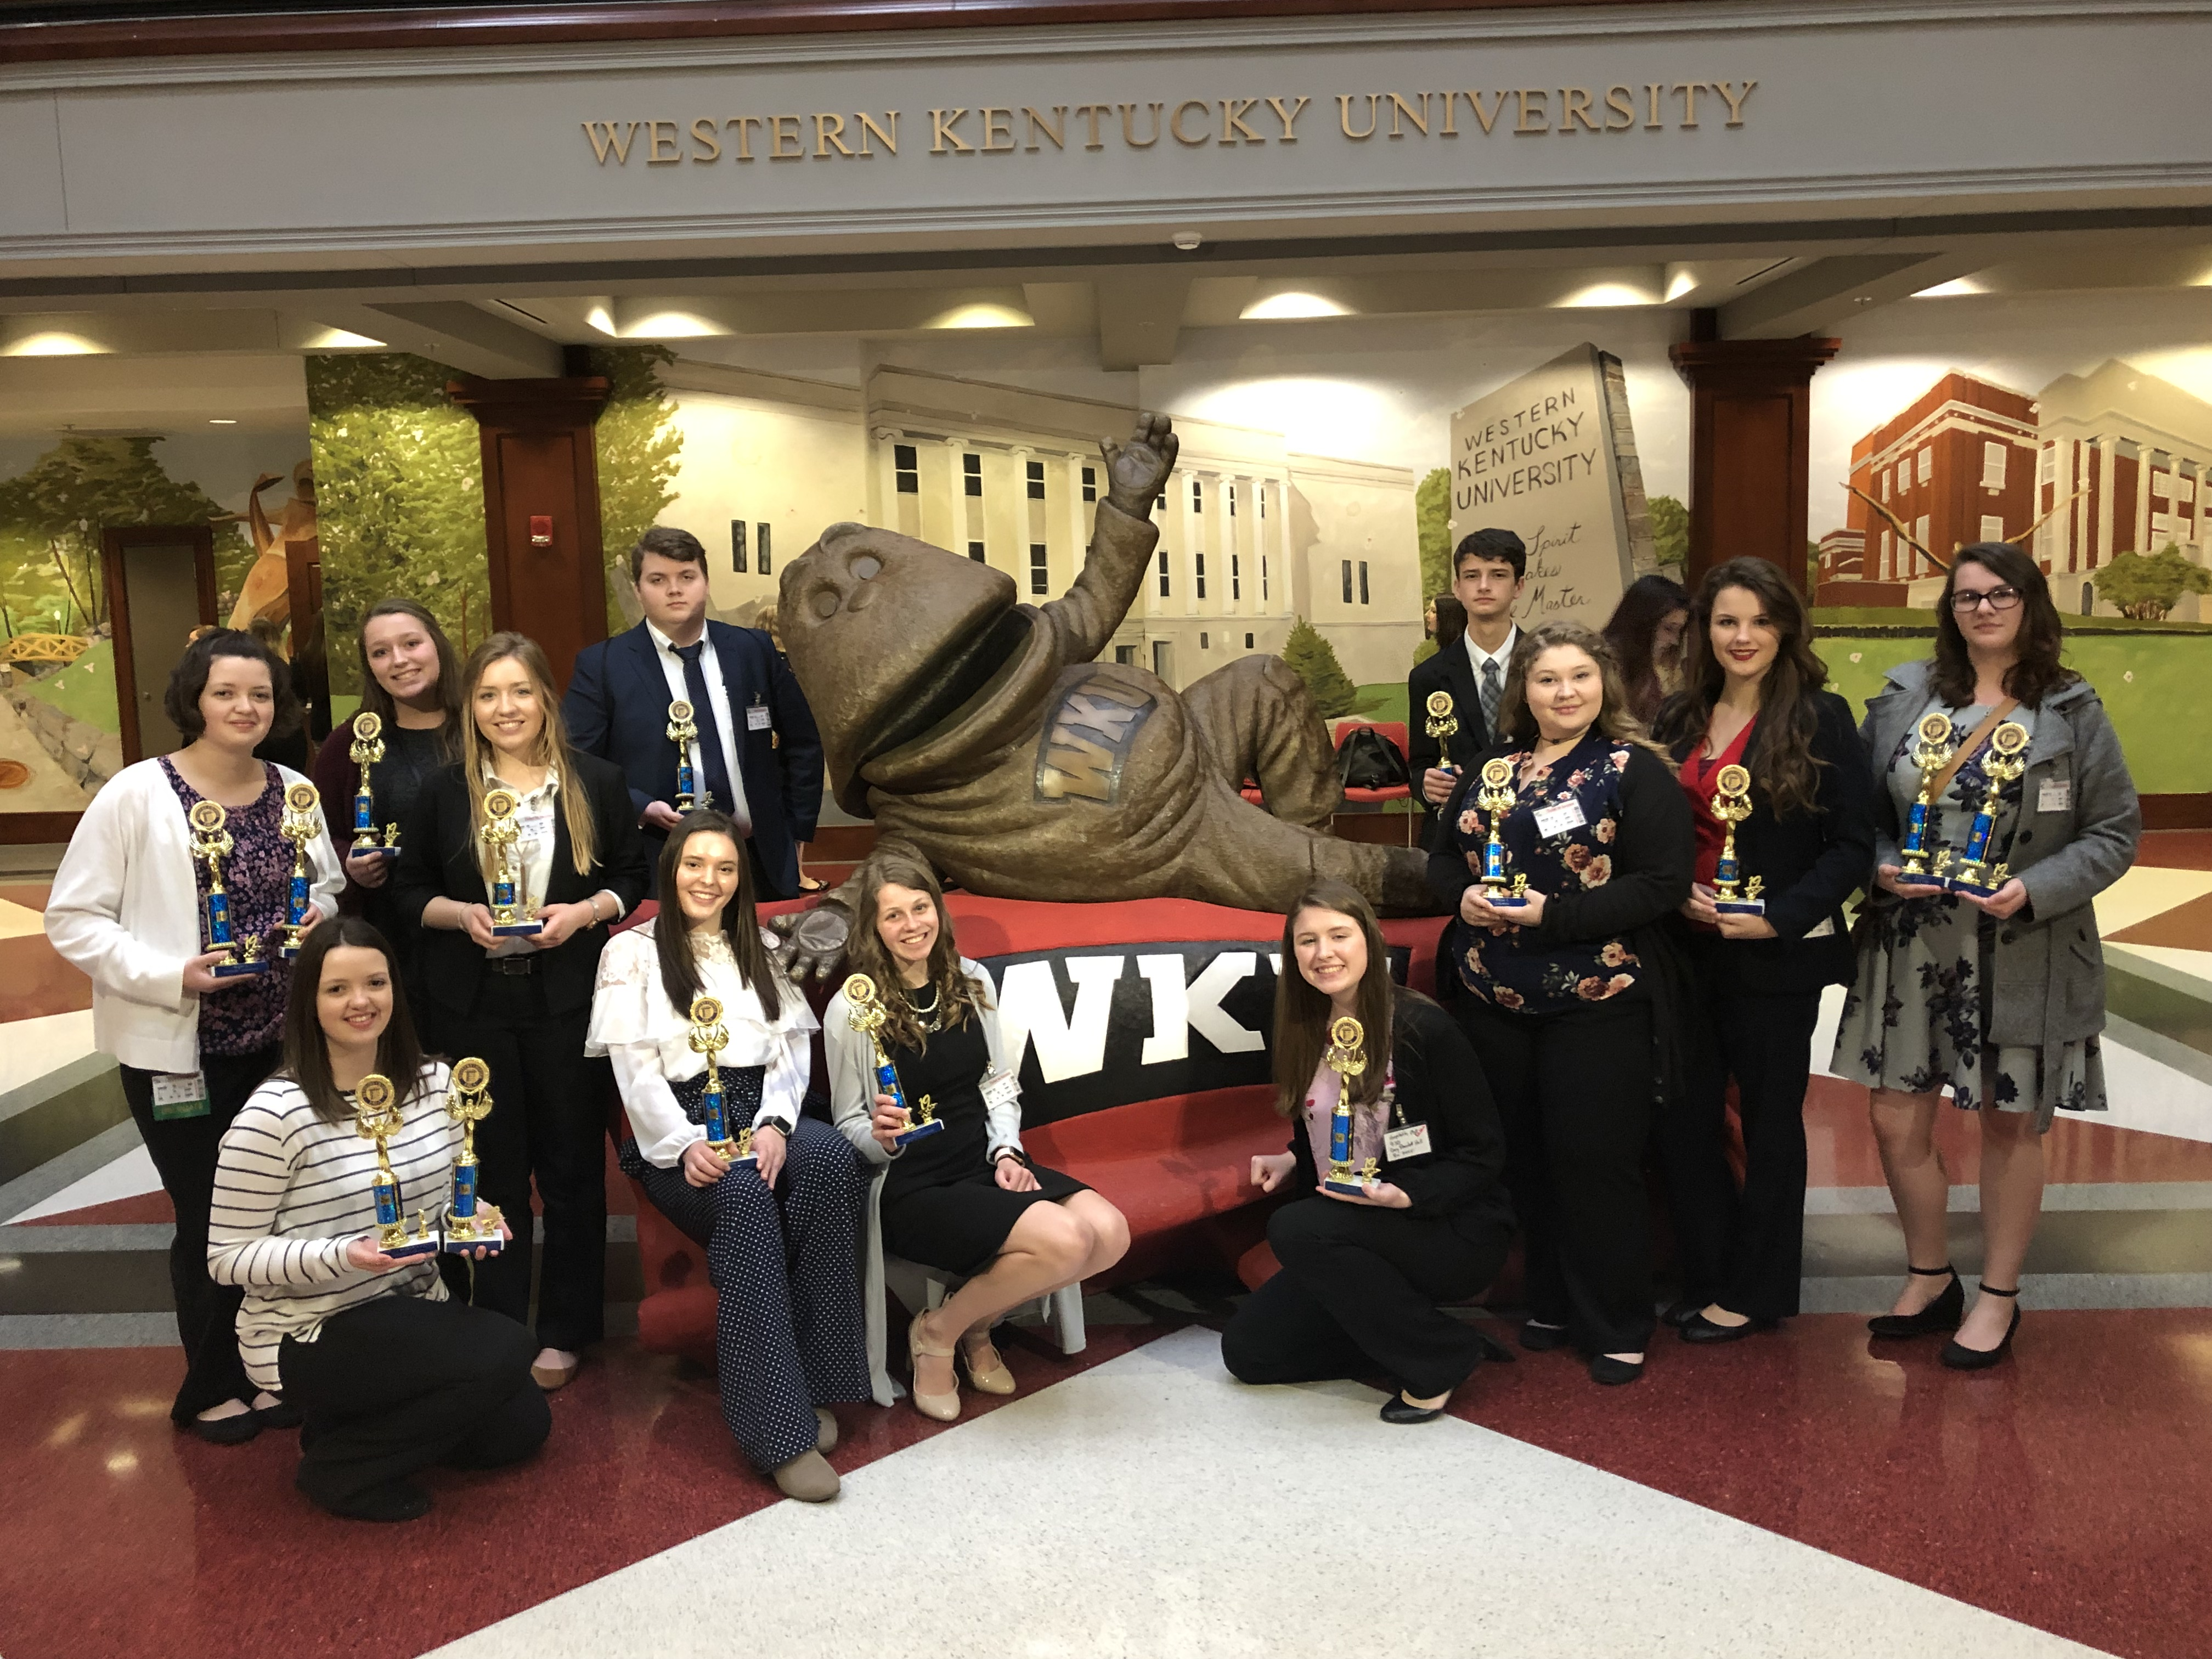 FBLA winners posing with trophies